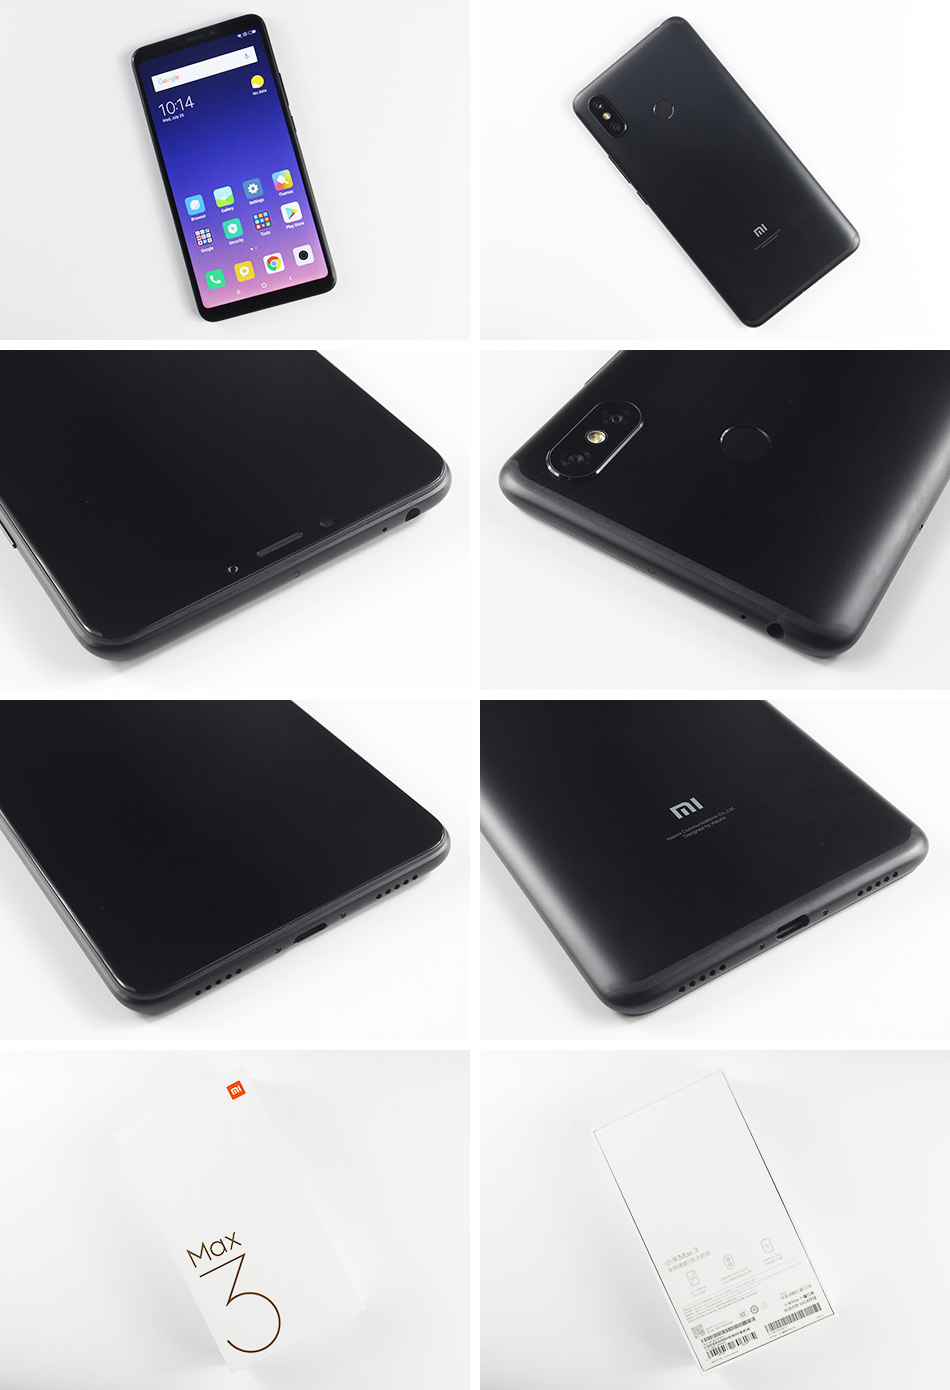 "HTB1lIQlGNGYBuNjy0Fnq6x5lpXaL Original Global ROM Xiaomi Mi Max 3 6GB 128GB Smartphone Snapdragon 636 Octa Core 6.9"" 2160x1080 Full Screen Dual Camera 5500mAh"